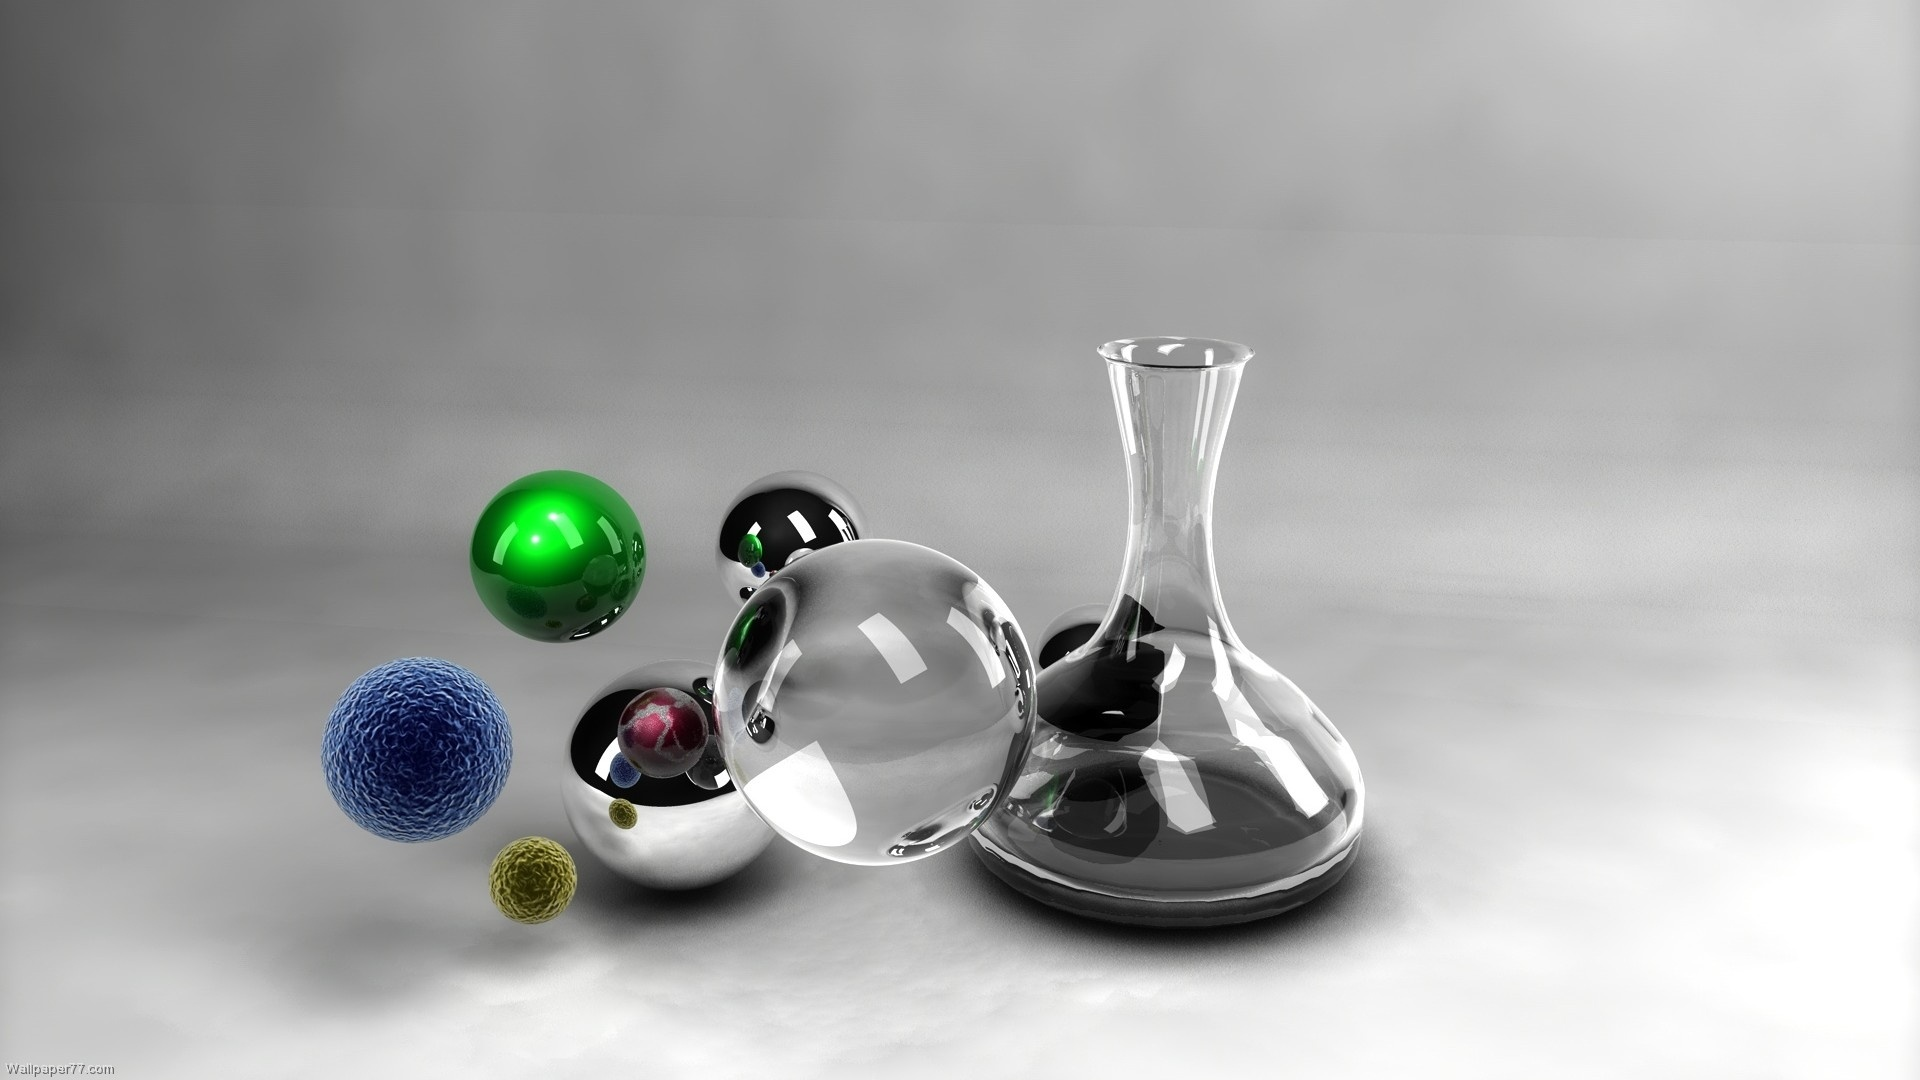 Chemistry hd desktop wallpaper